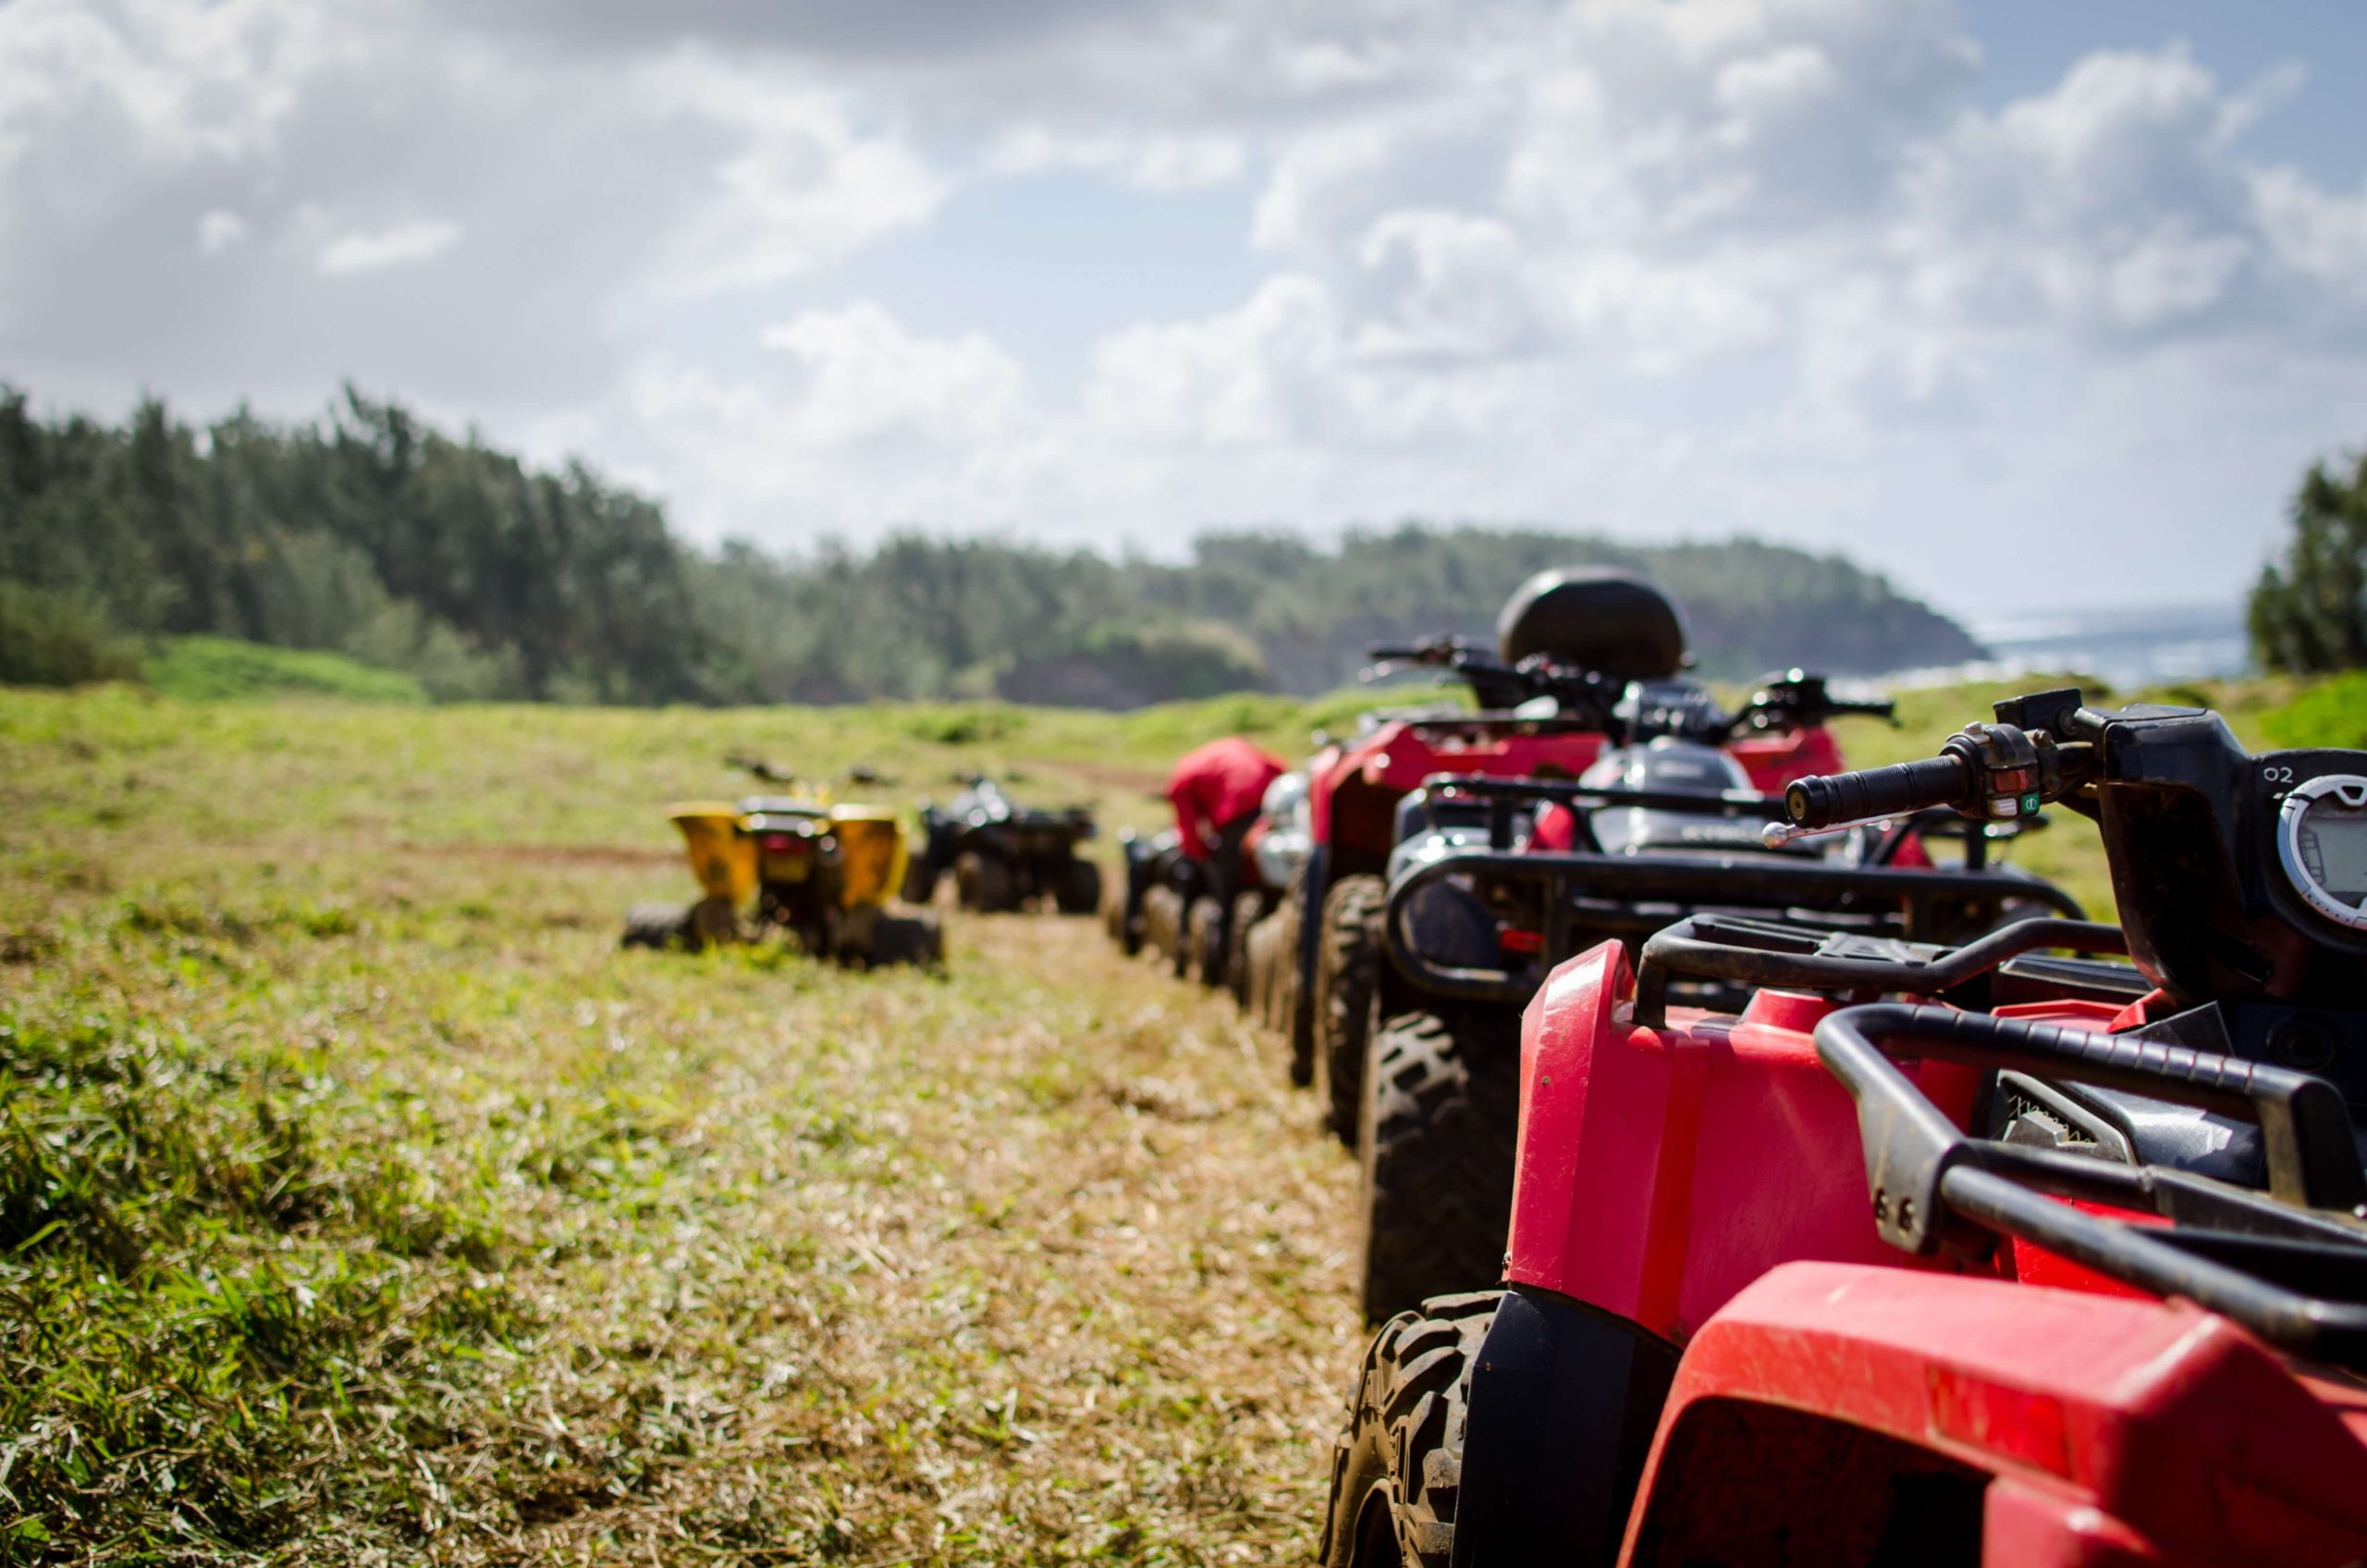 Vehicle Tracking Solution Recovers Stolen Quad Bikes